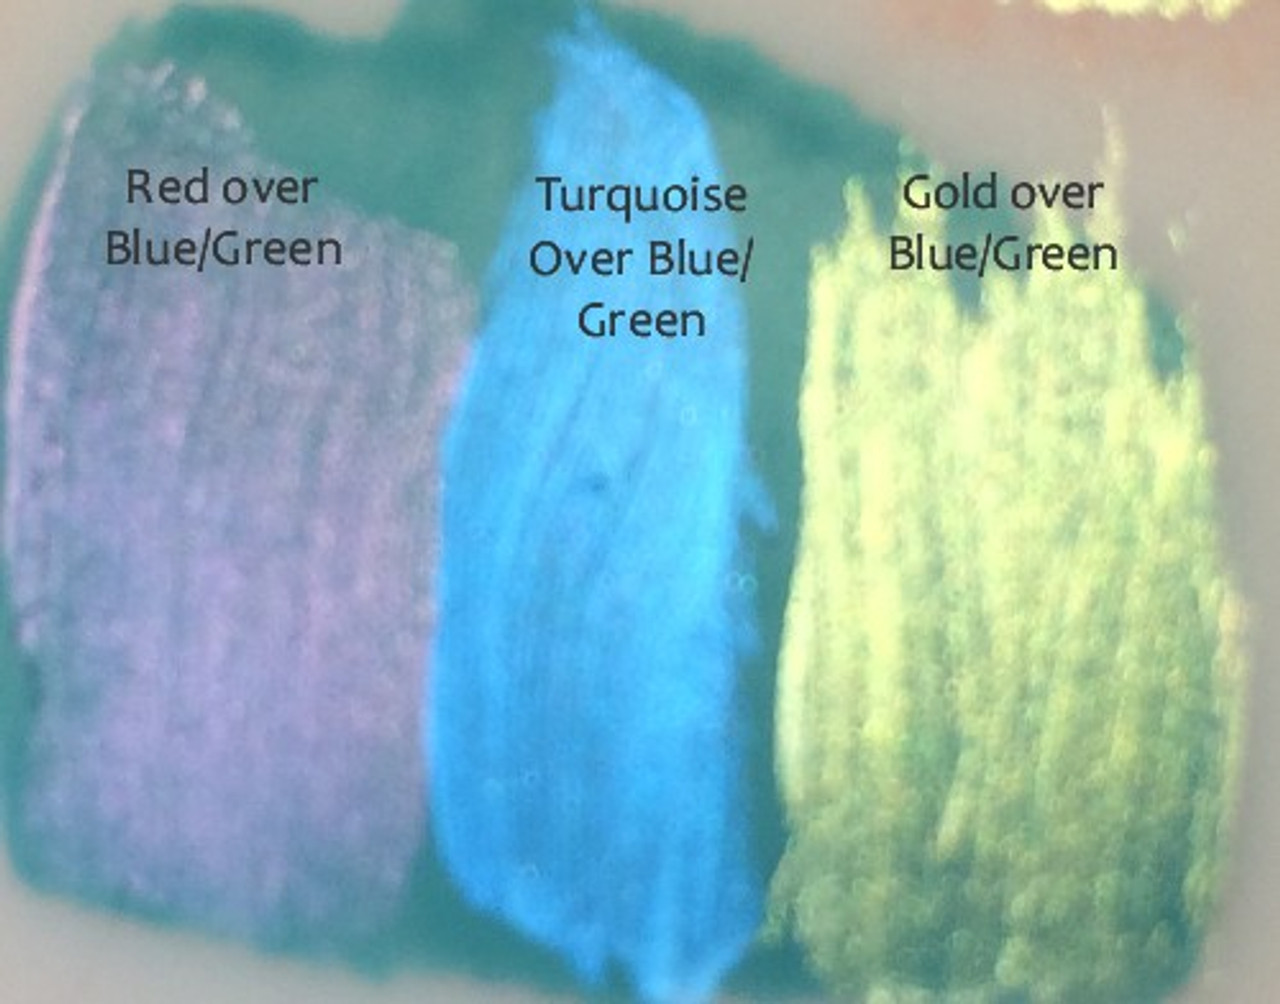 Over dried Blue-Green color